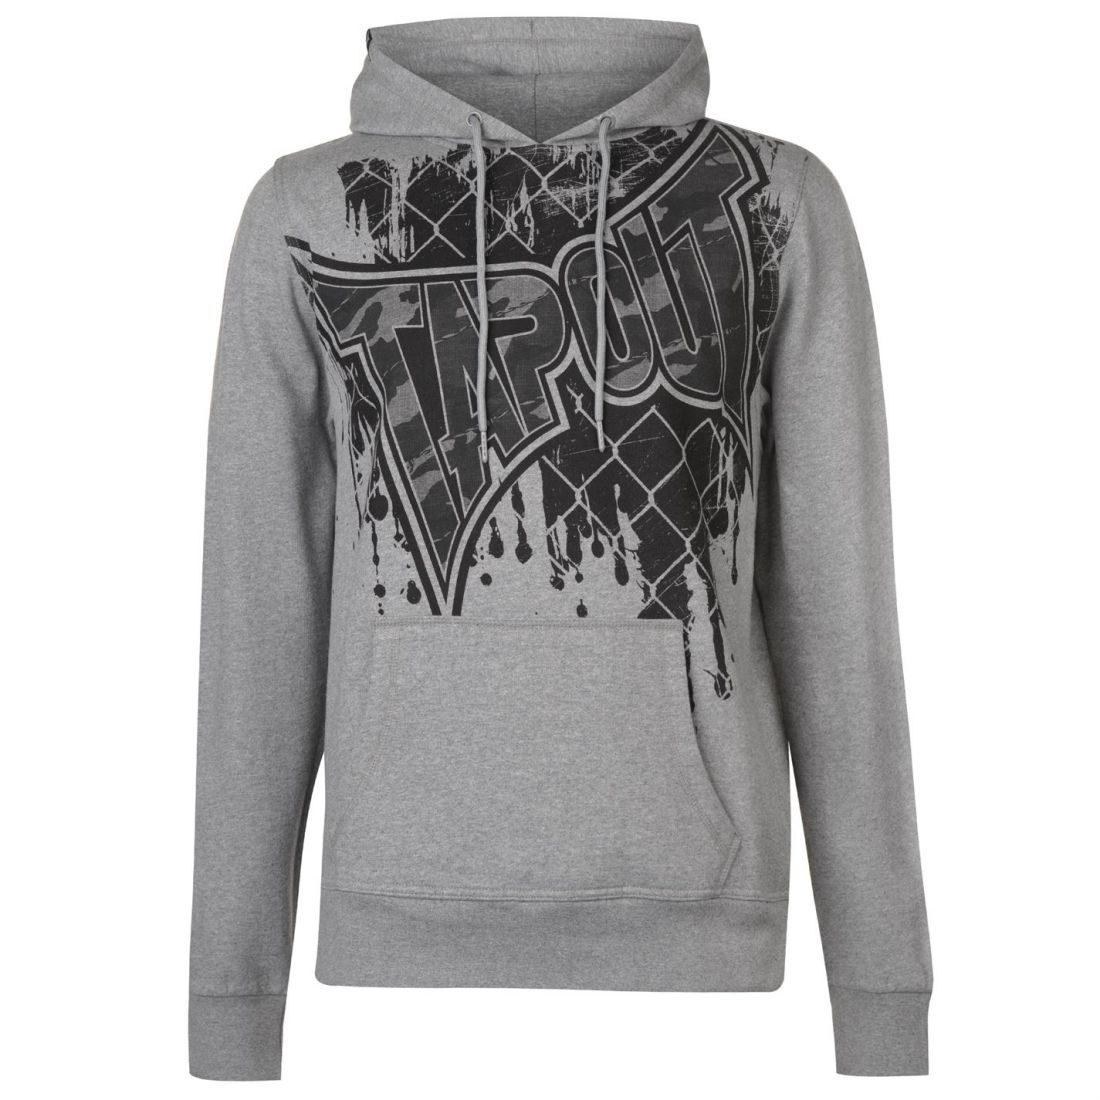 No Fear Mens OTH Hoody Hoodie Hooded Top Long Sleeve Warm Kangaroo Pocket Print